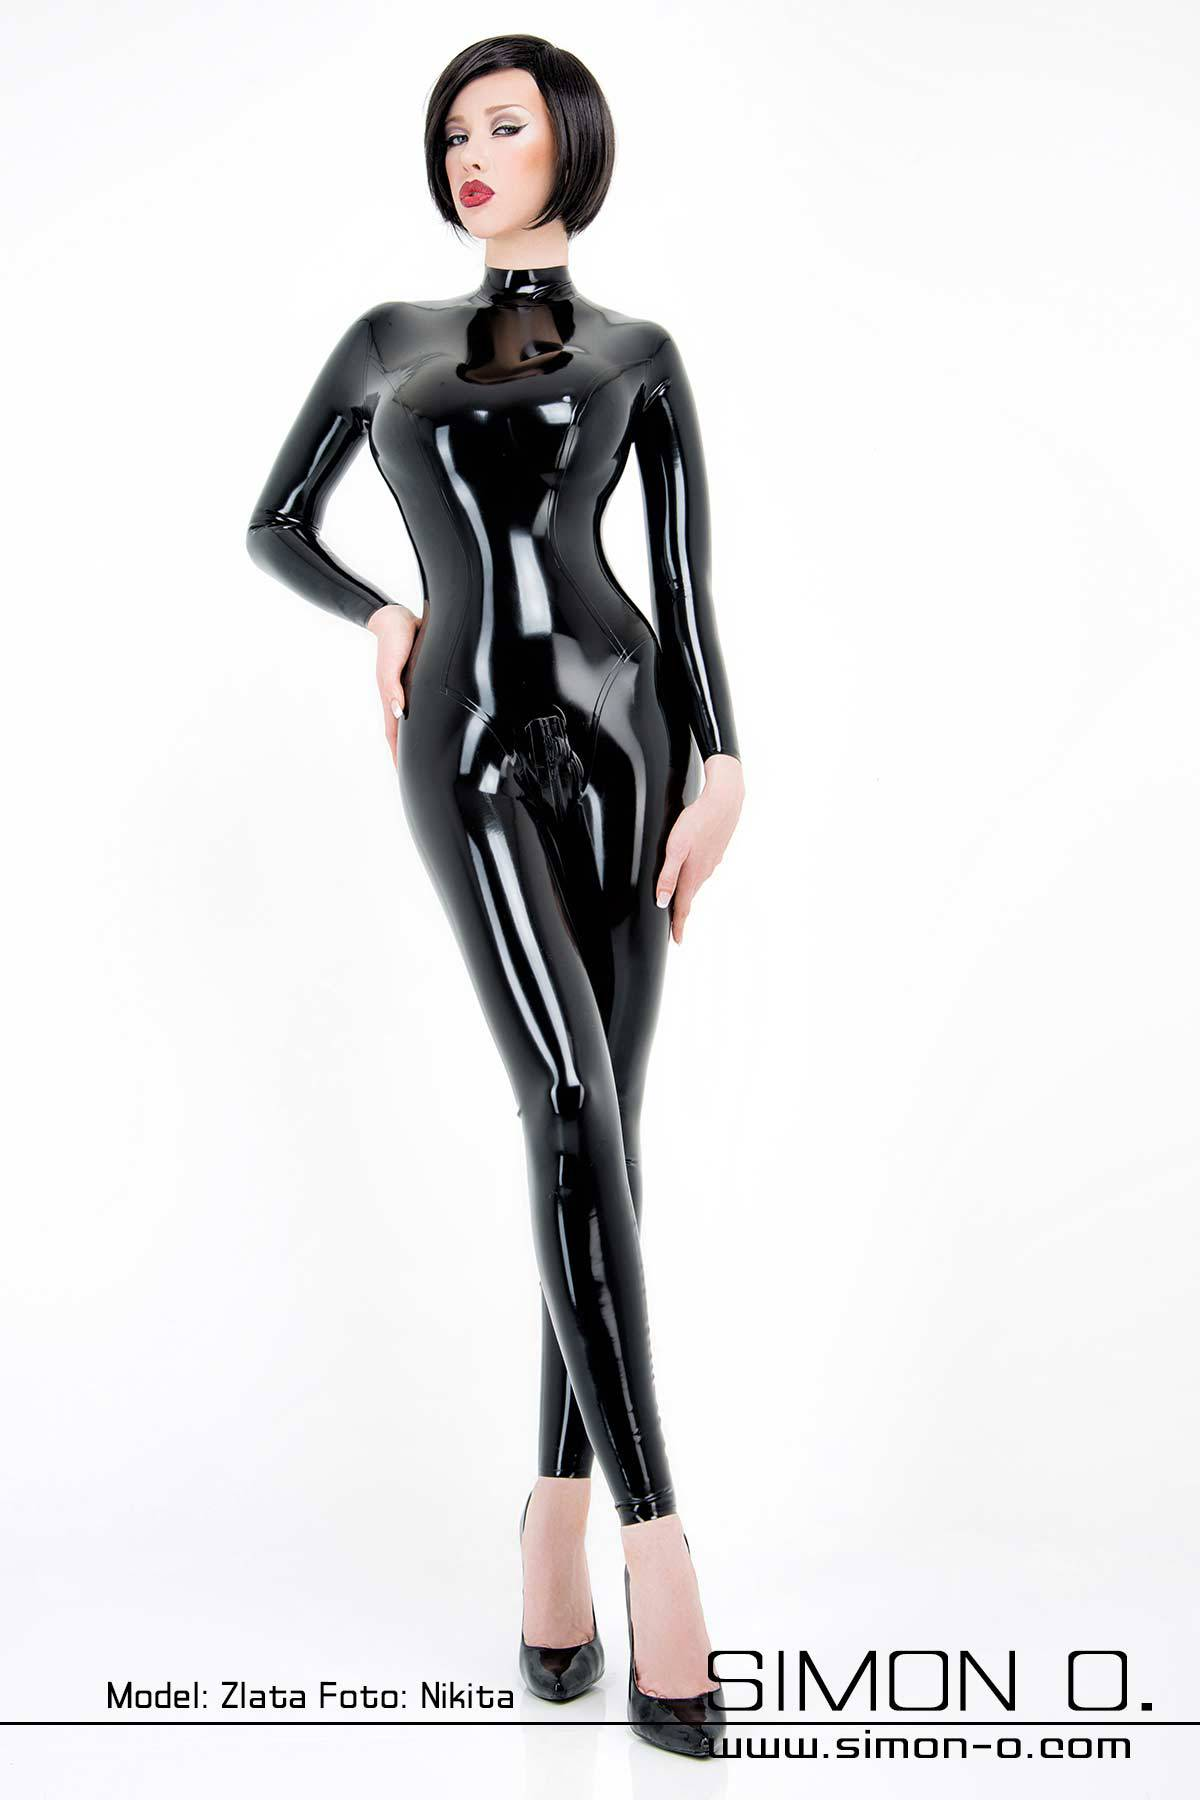 A model wears a shiny skintight black latex catsuit in black with skin tight fit